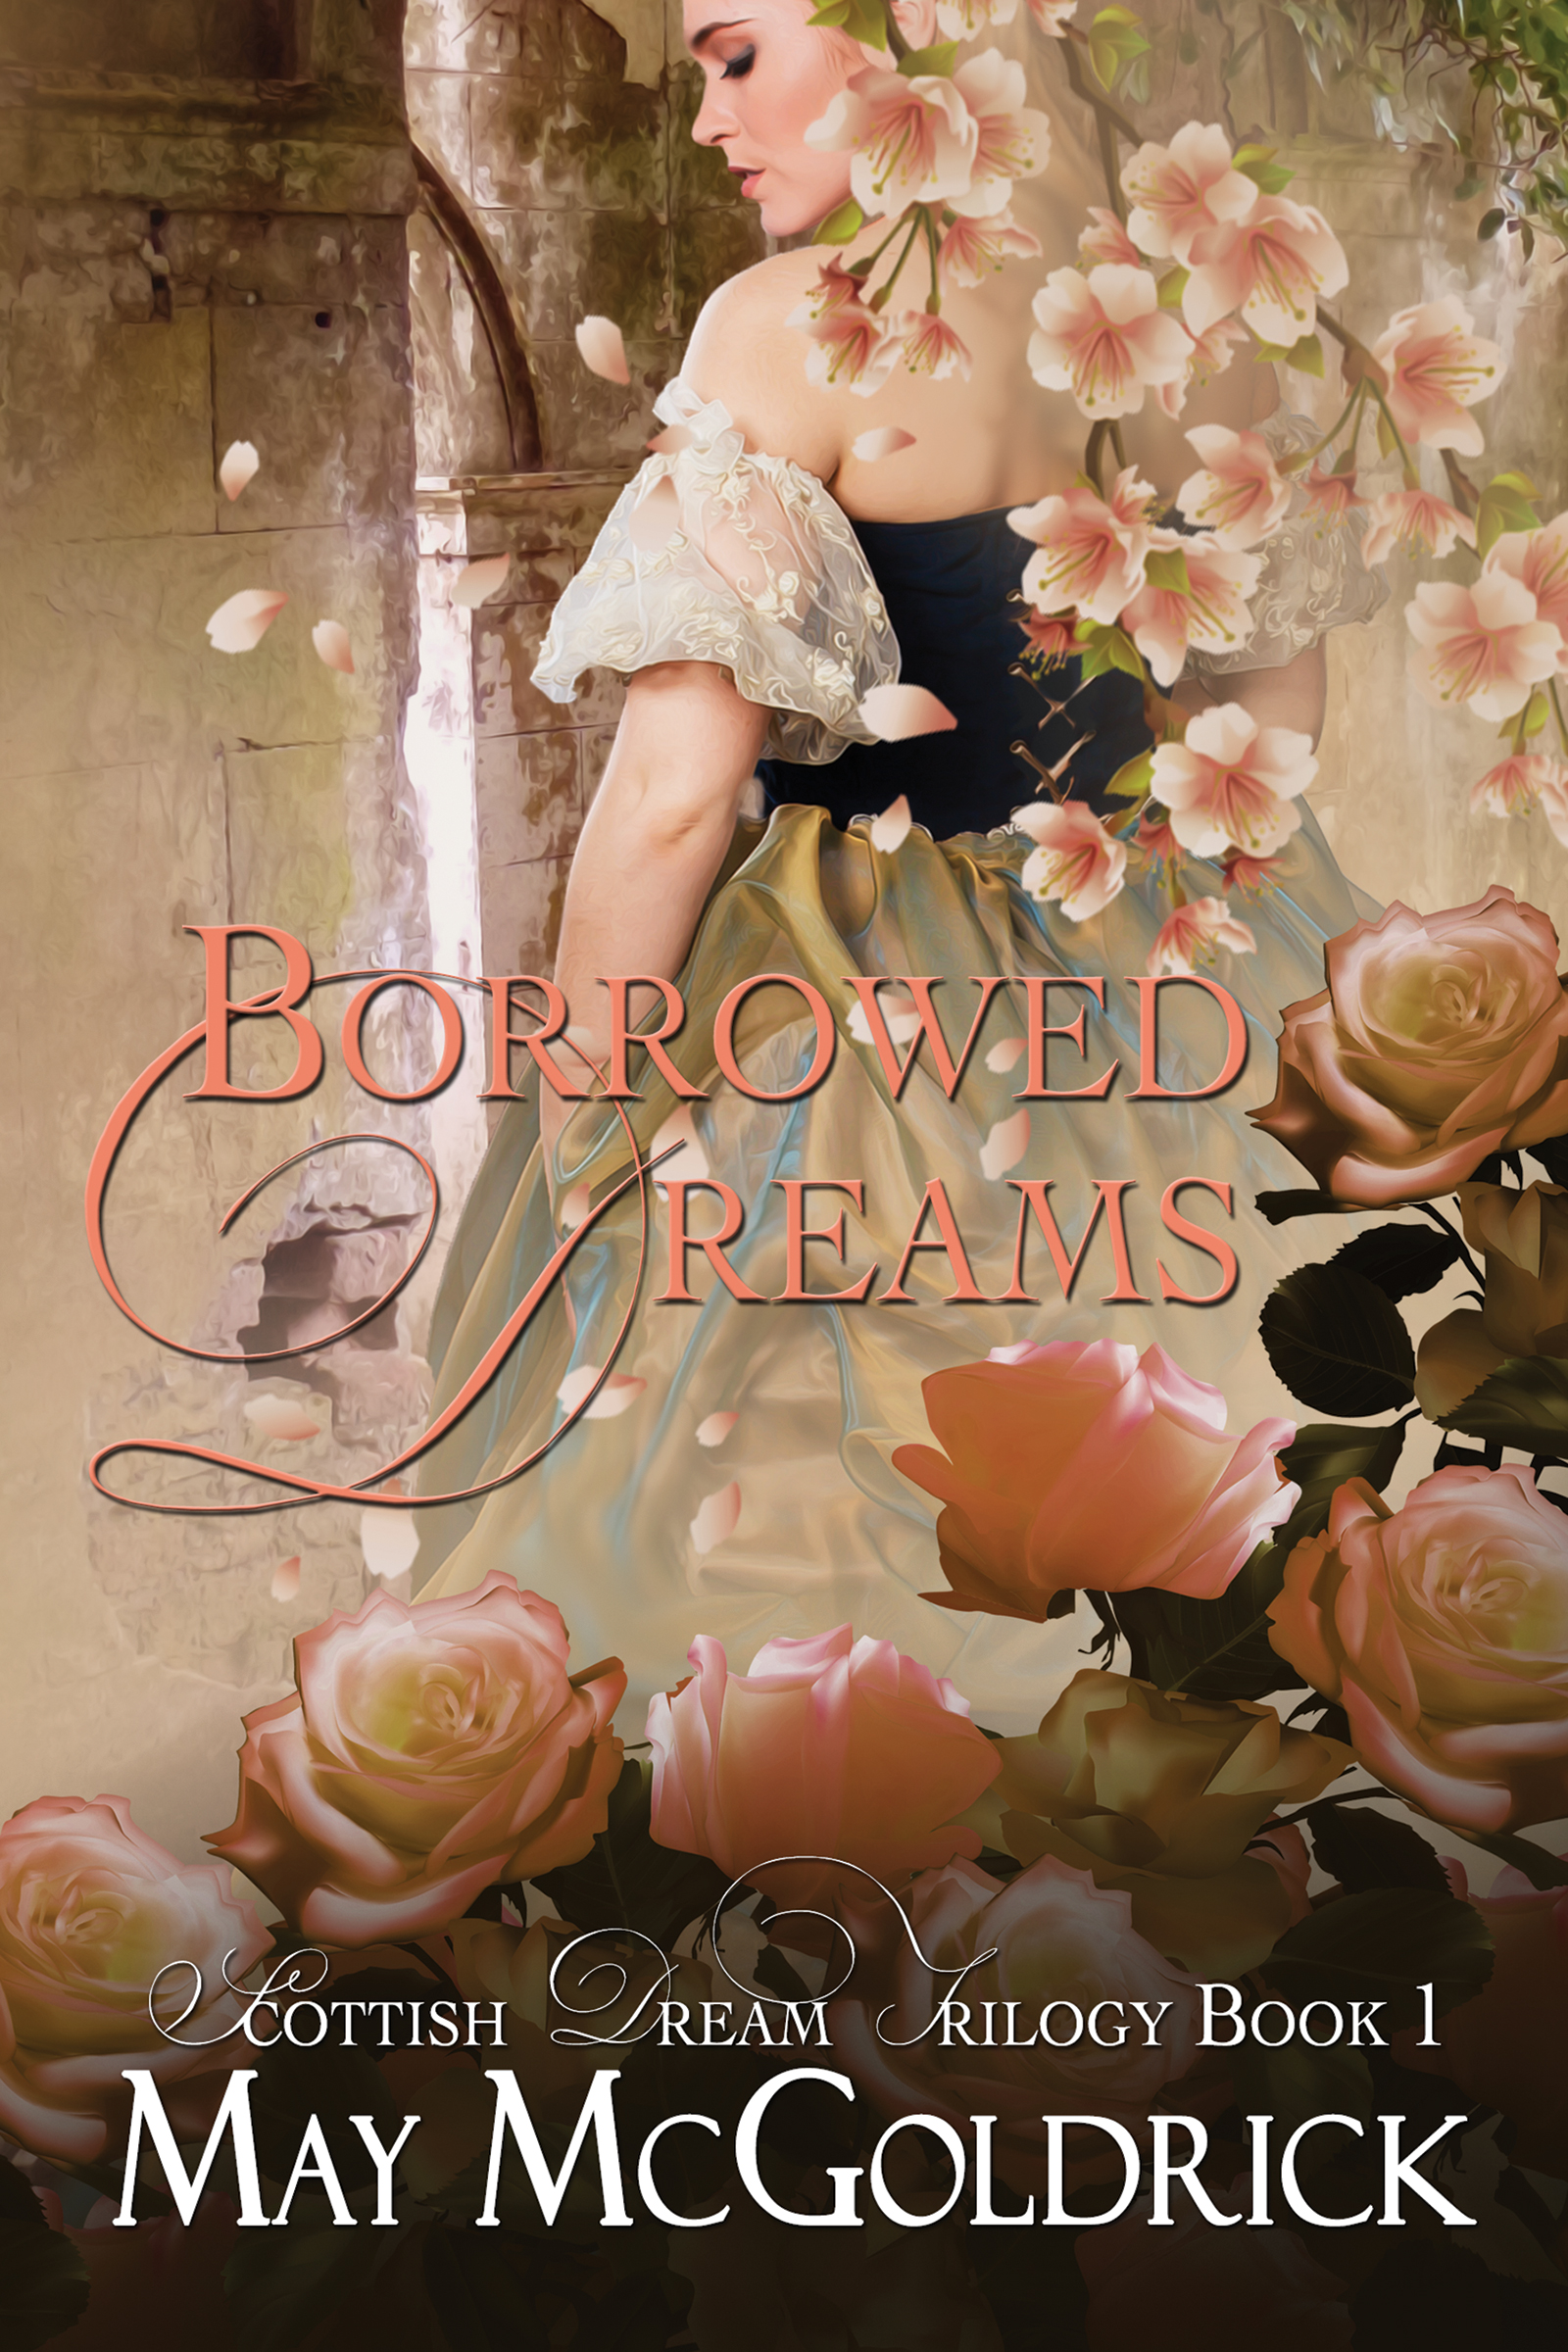 borrowed-dreams-e-reader-copy.jpg